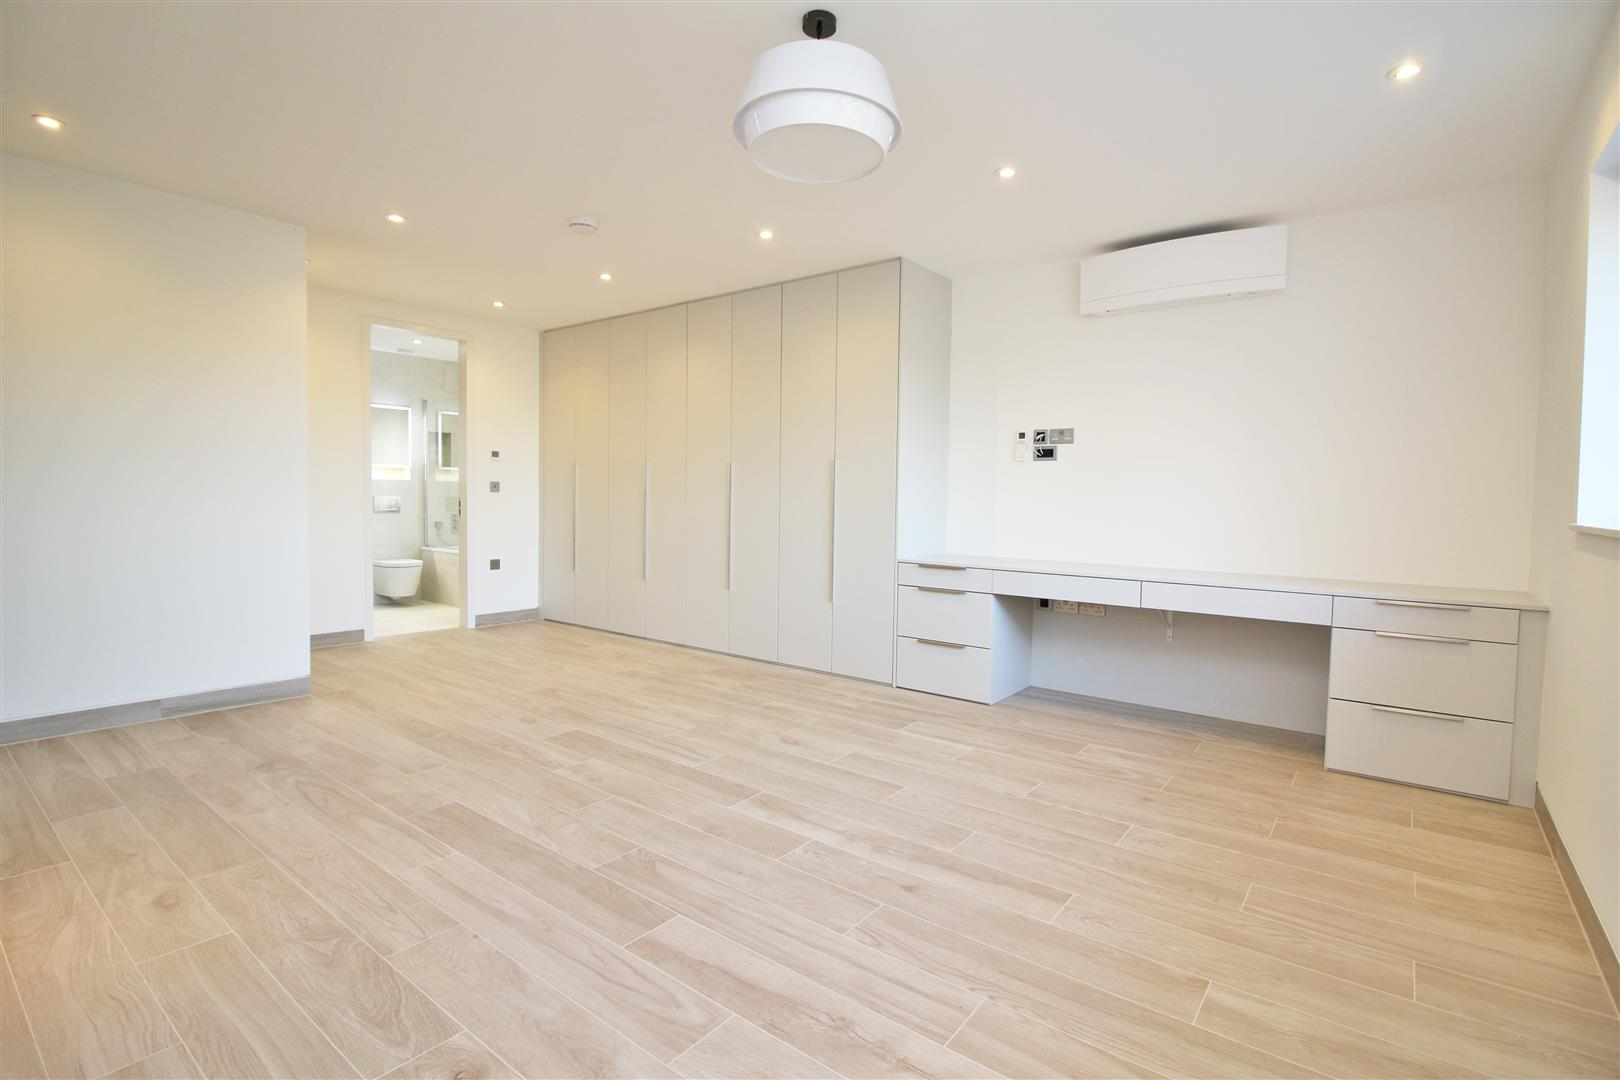 7 bed to rent - (Property Image 13)